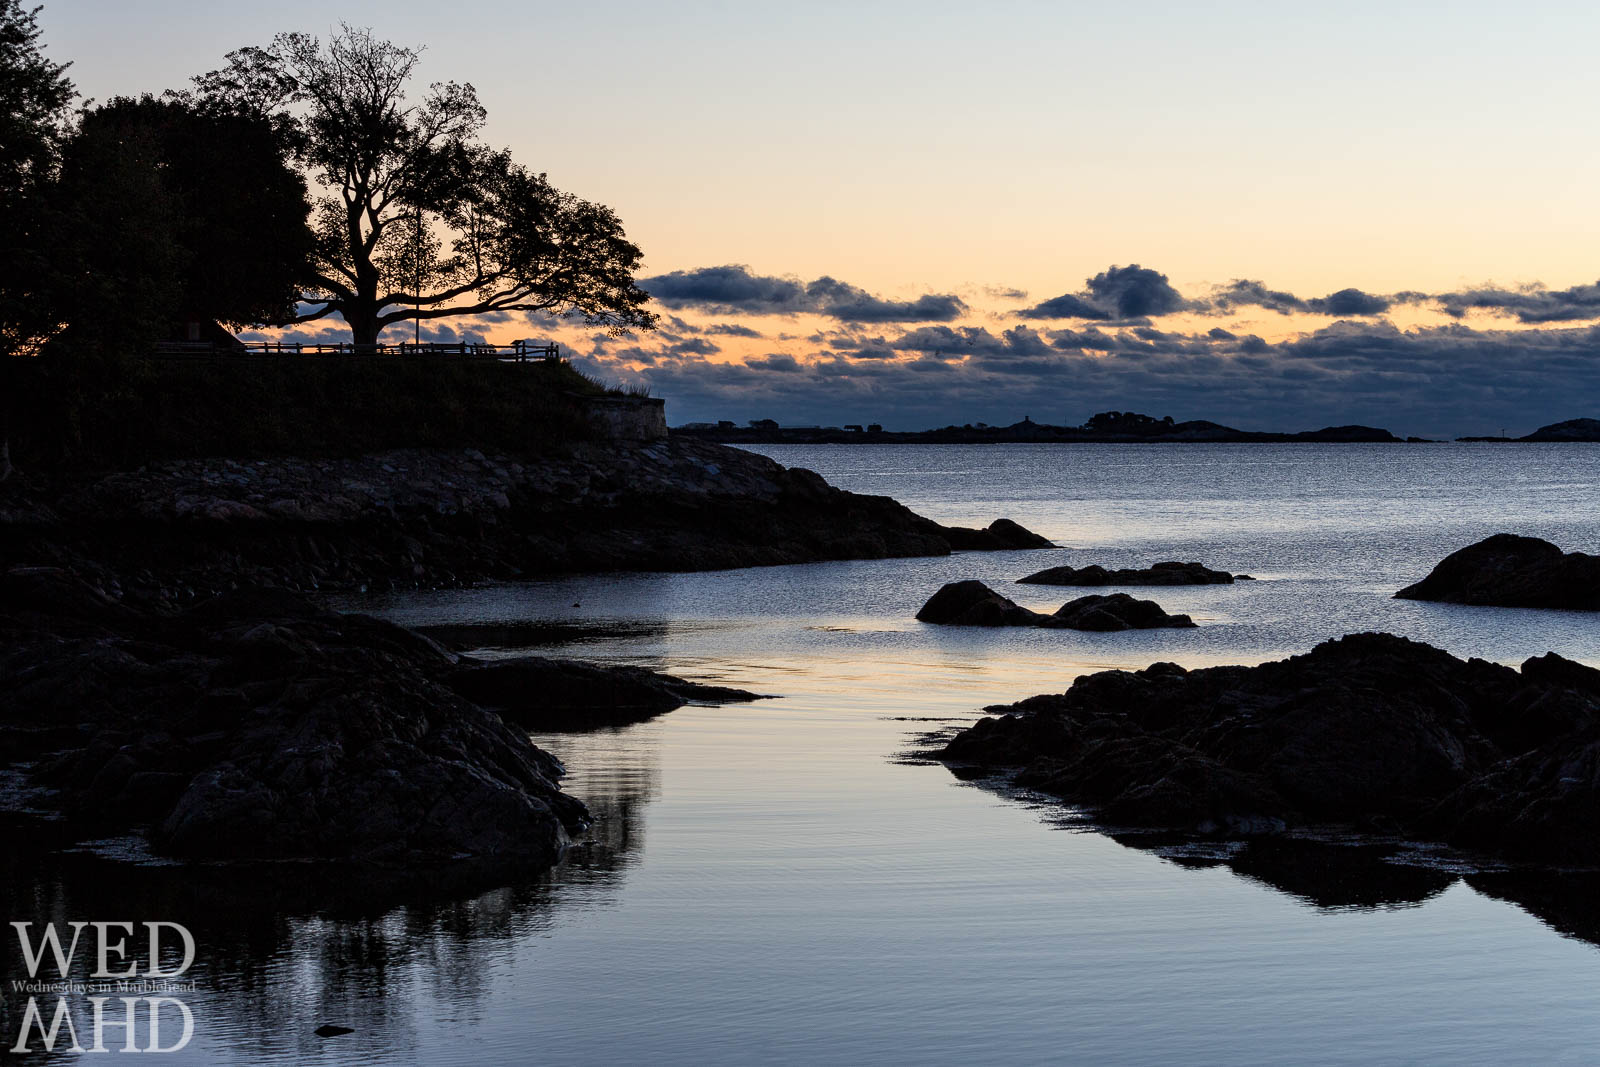 A calm morning on Fort Beach with the great tree at Fort Sewall cast in silhouette